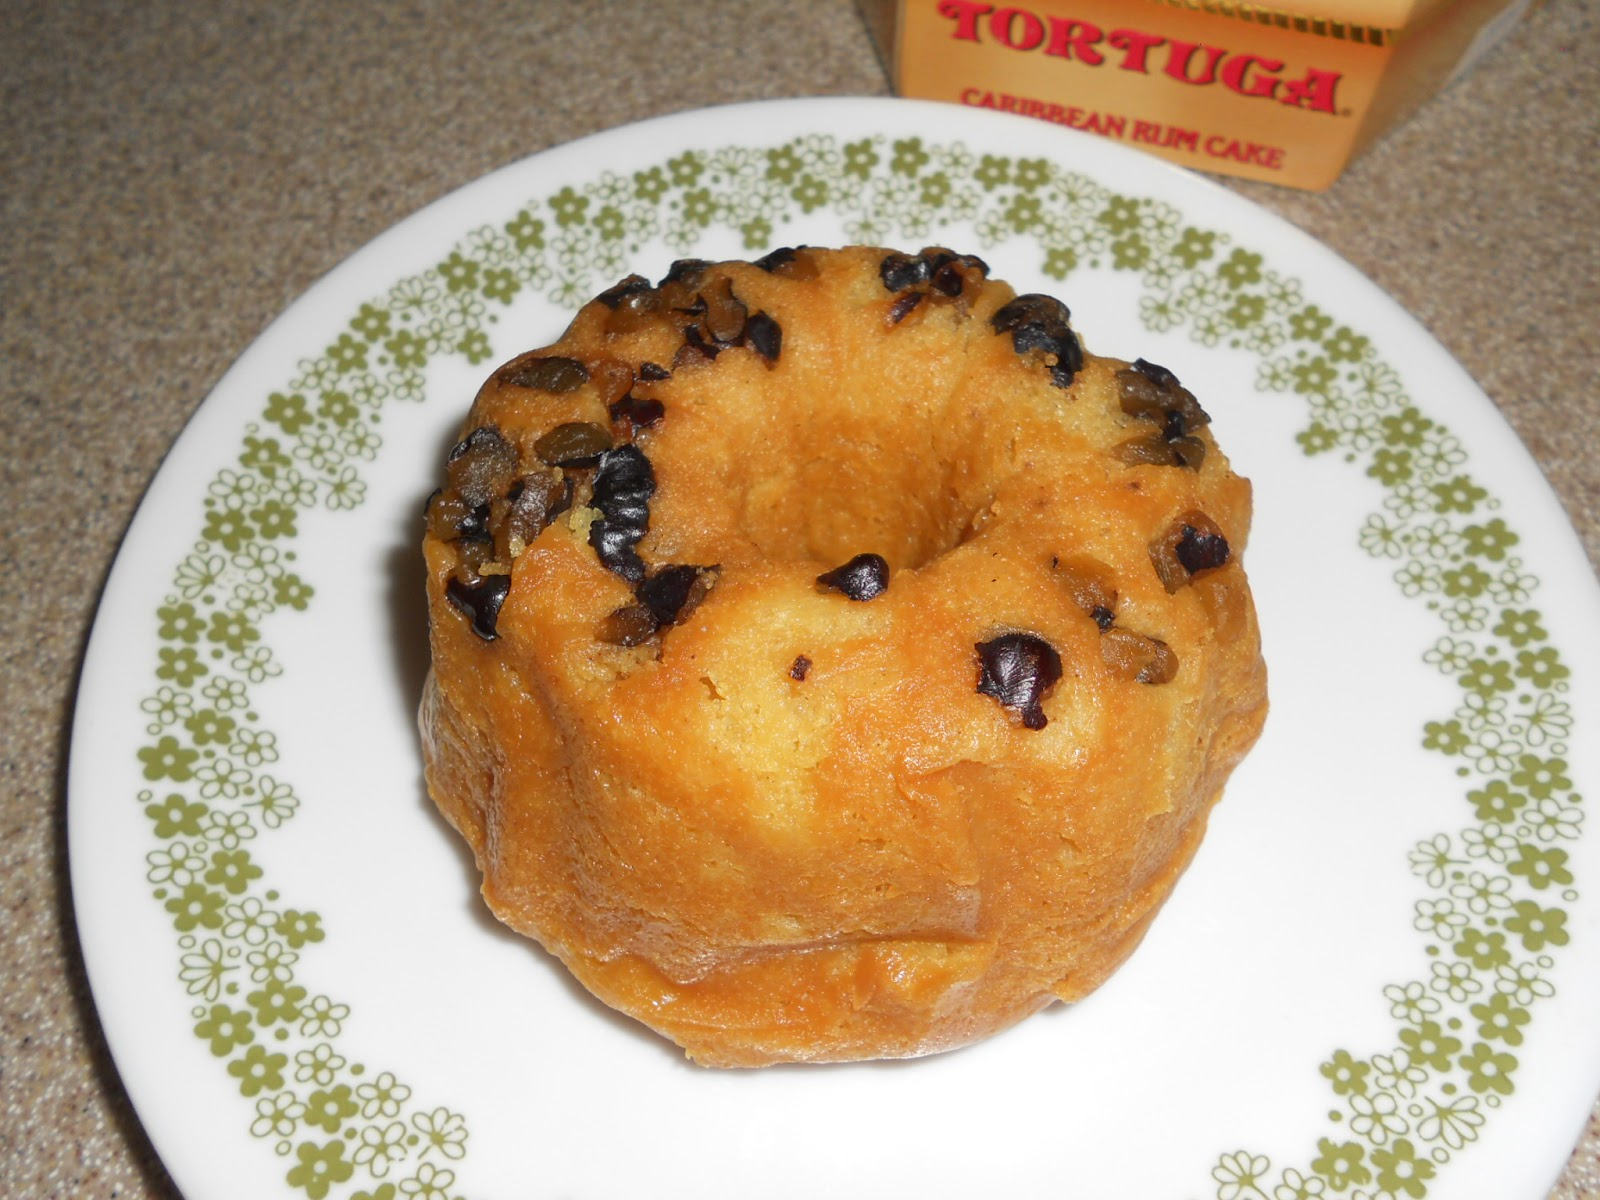 A Year Of Jubilee Reviews Tortuga Rum Cake Company Review